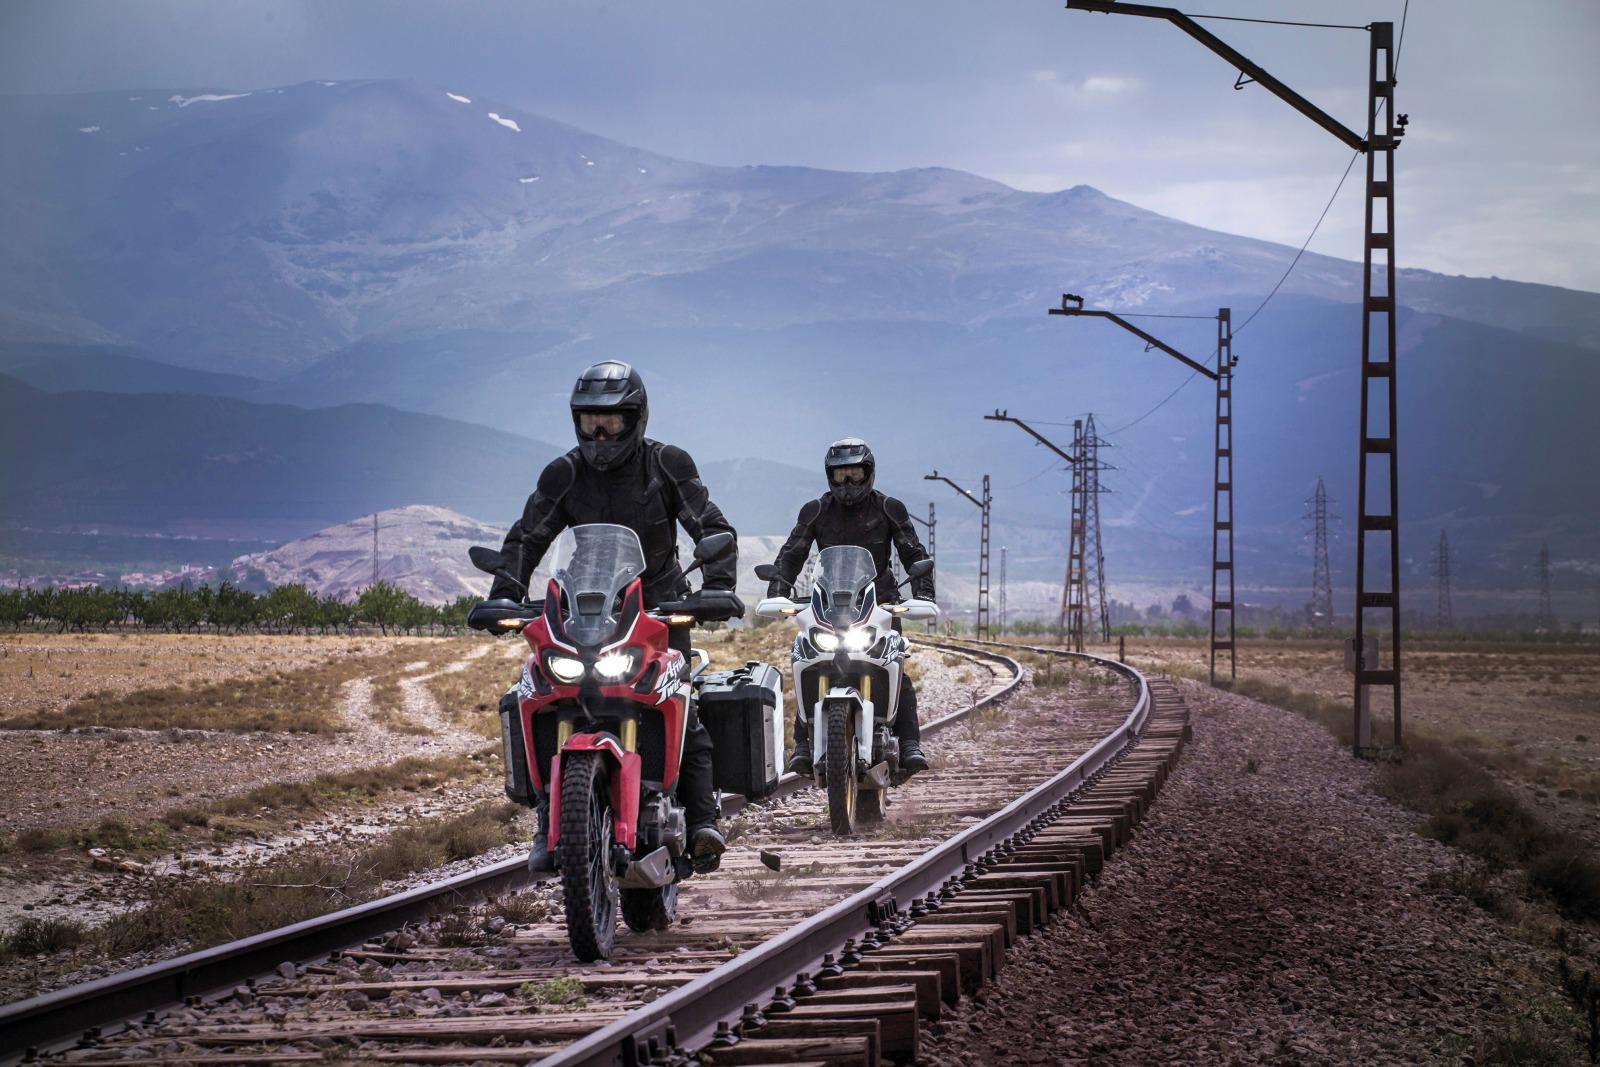 honda africa twin crfl pictures  motorcycles photo gallery